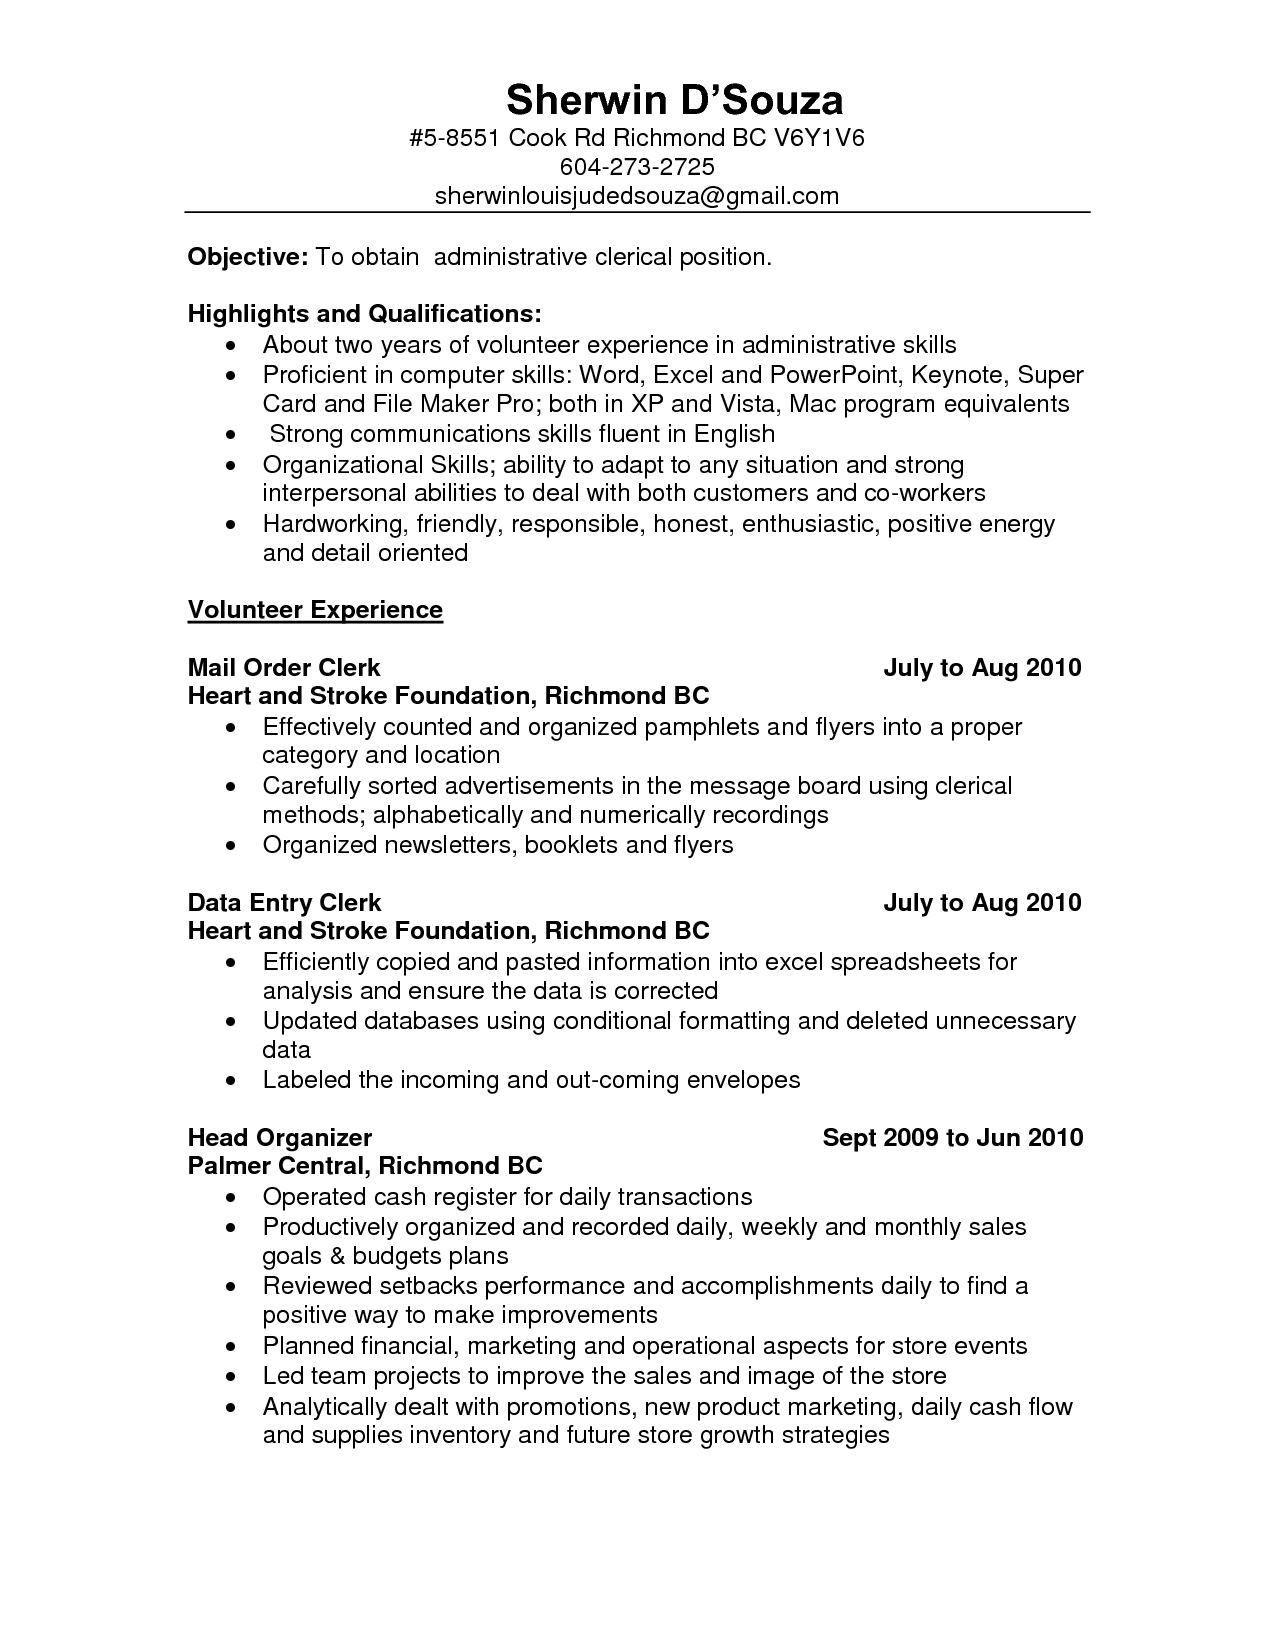 Beautiful Law Clerk Resume Sample Highlights And Qualifications